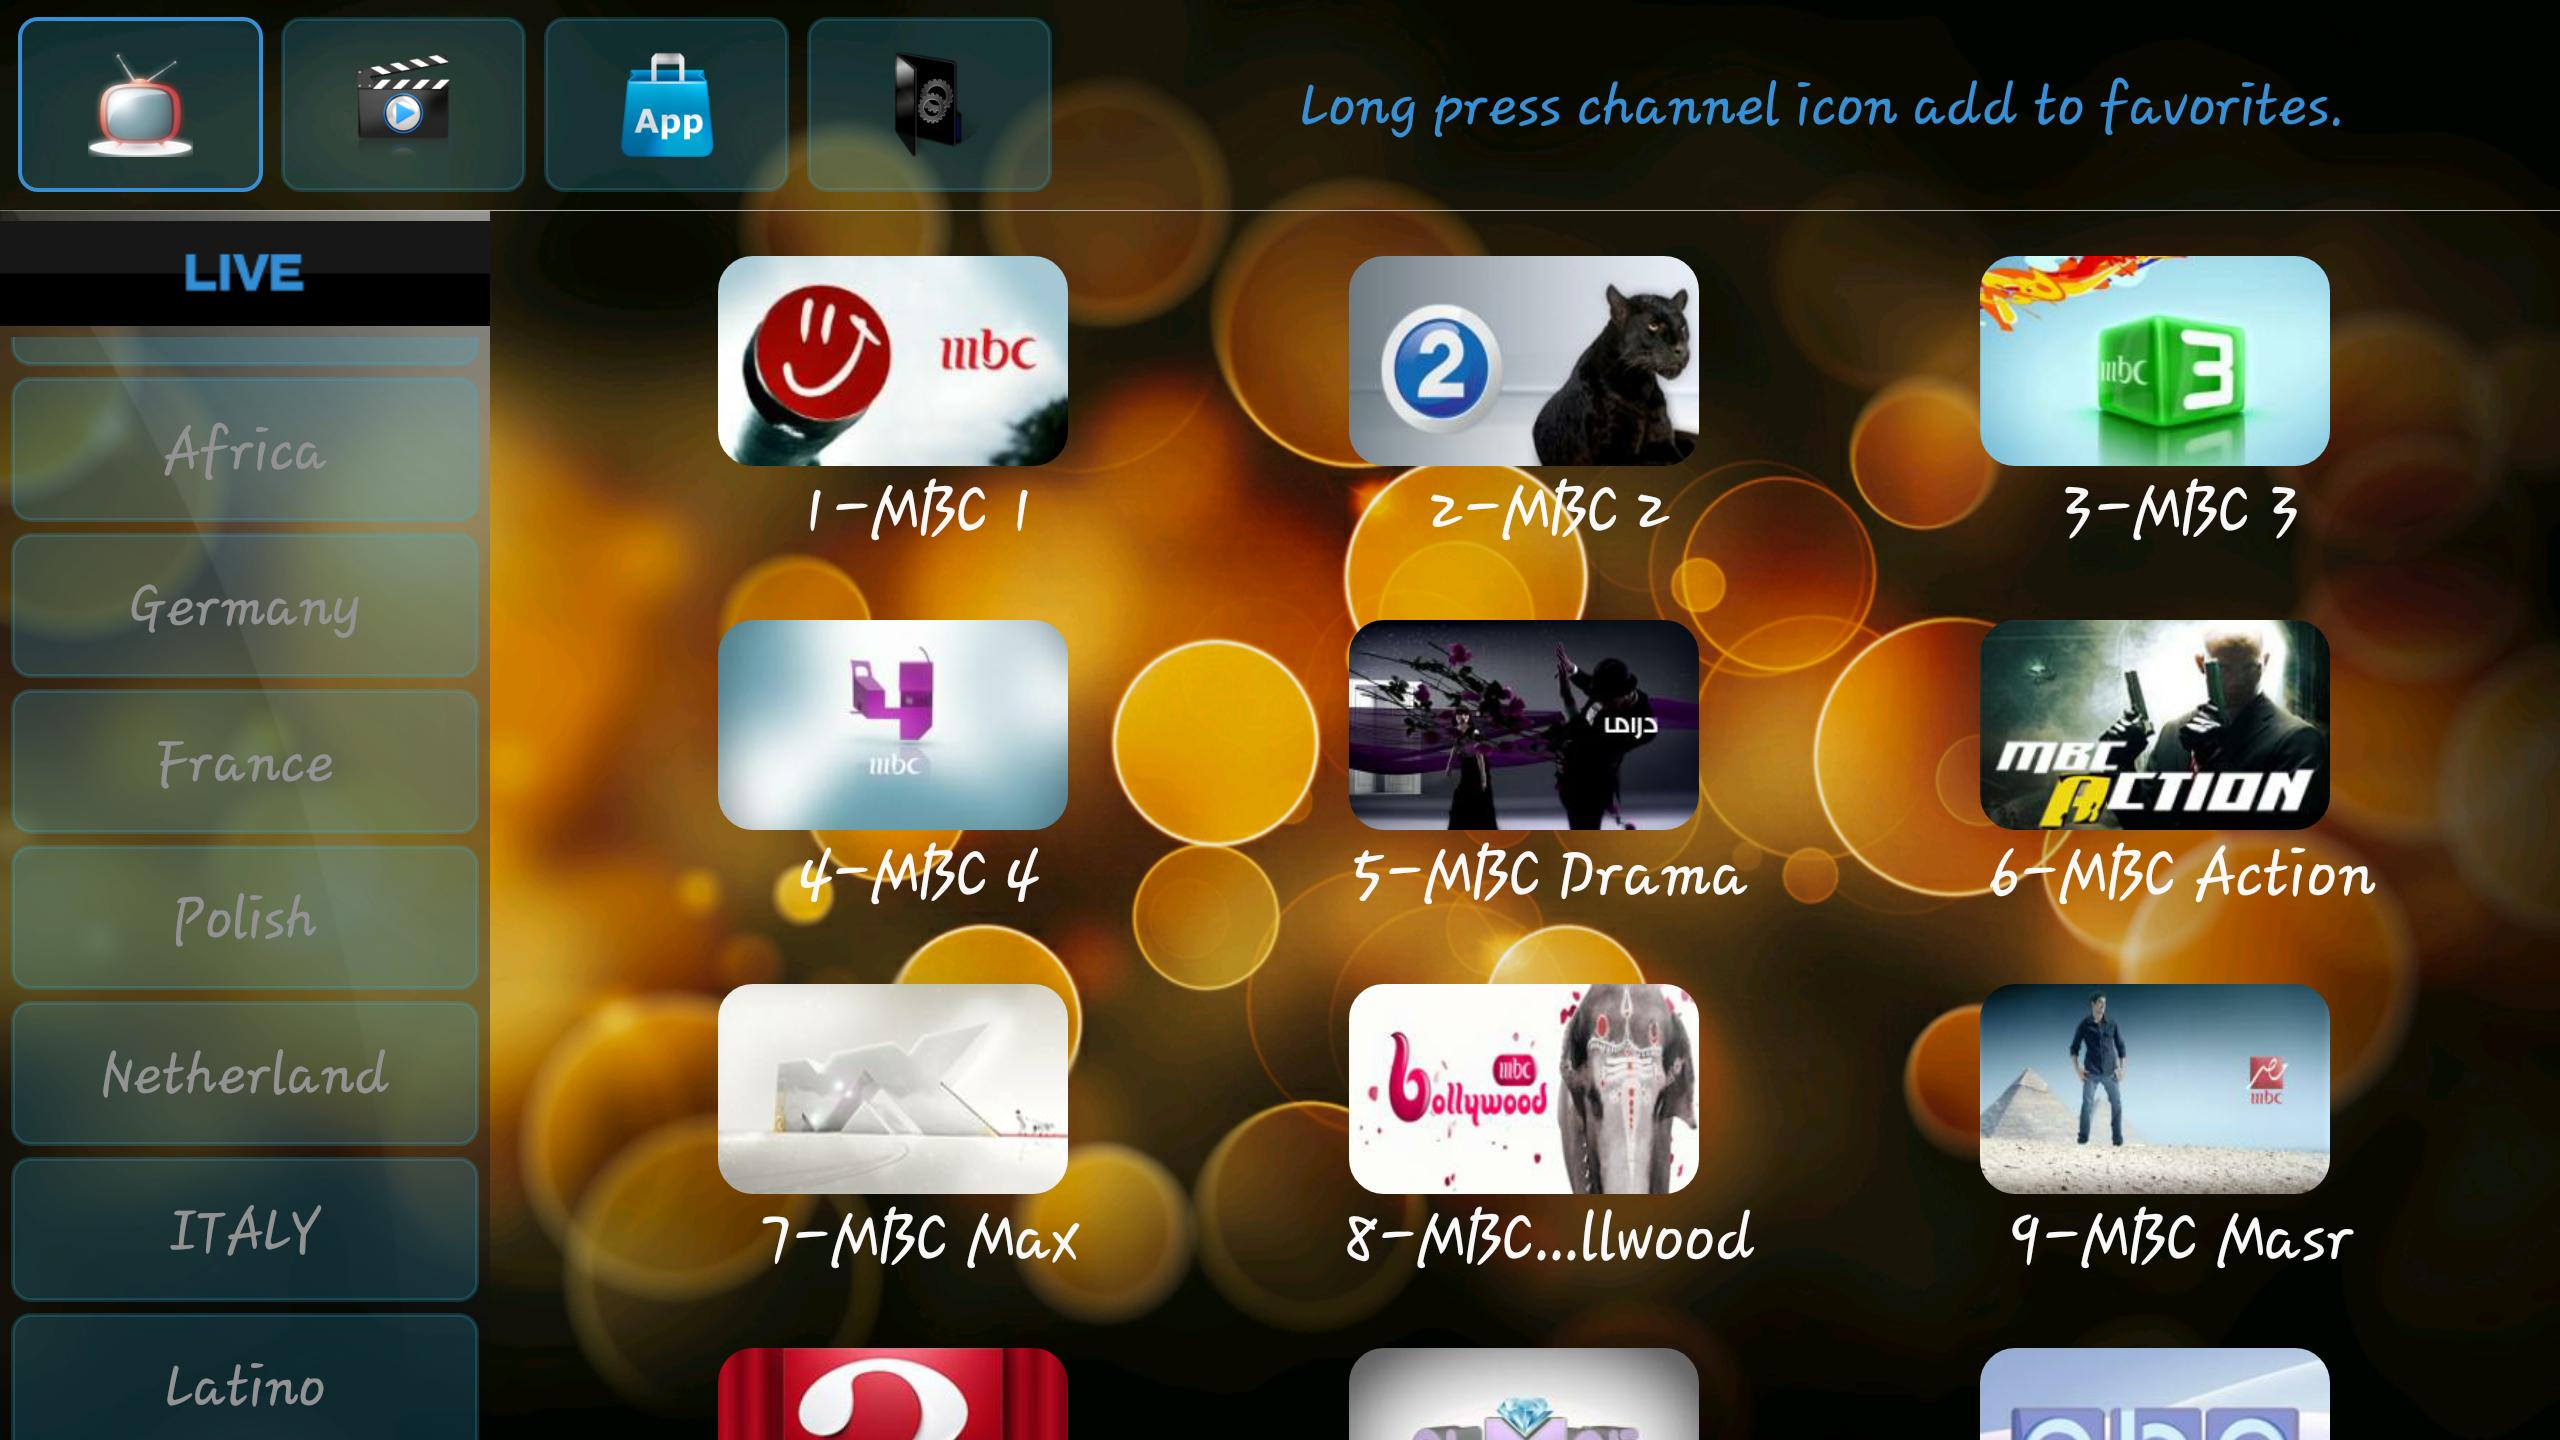 Royal TV for Android - APK Download